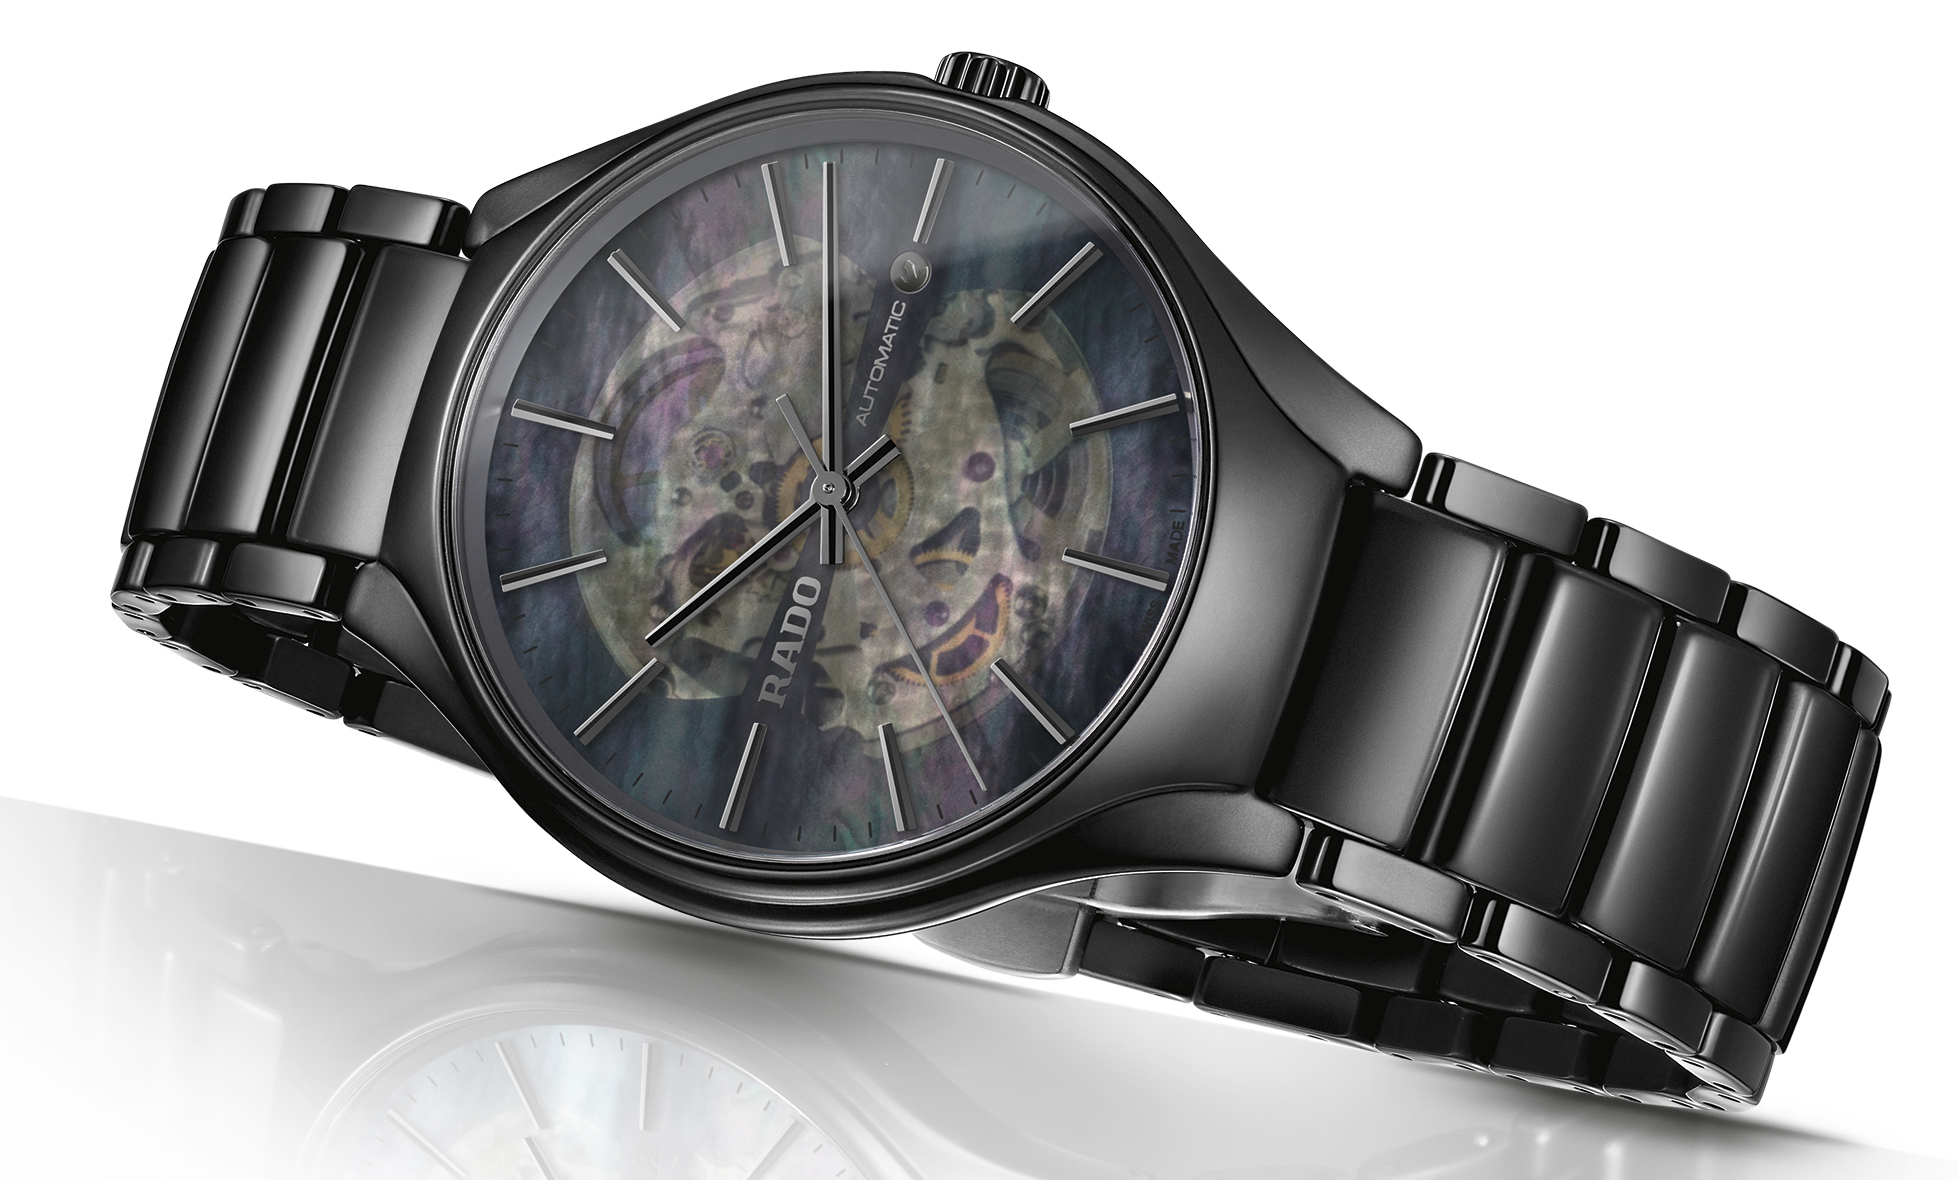 Rado True Open Heart watch in black | JCK On YOur Market